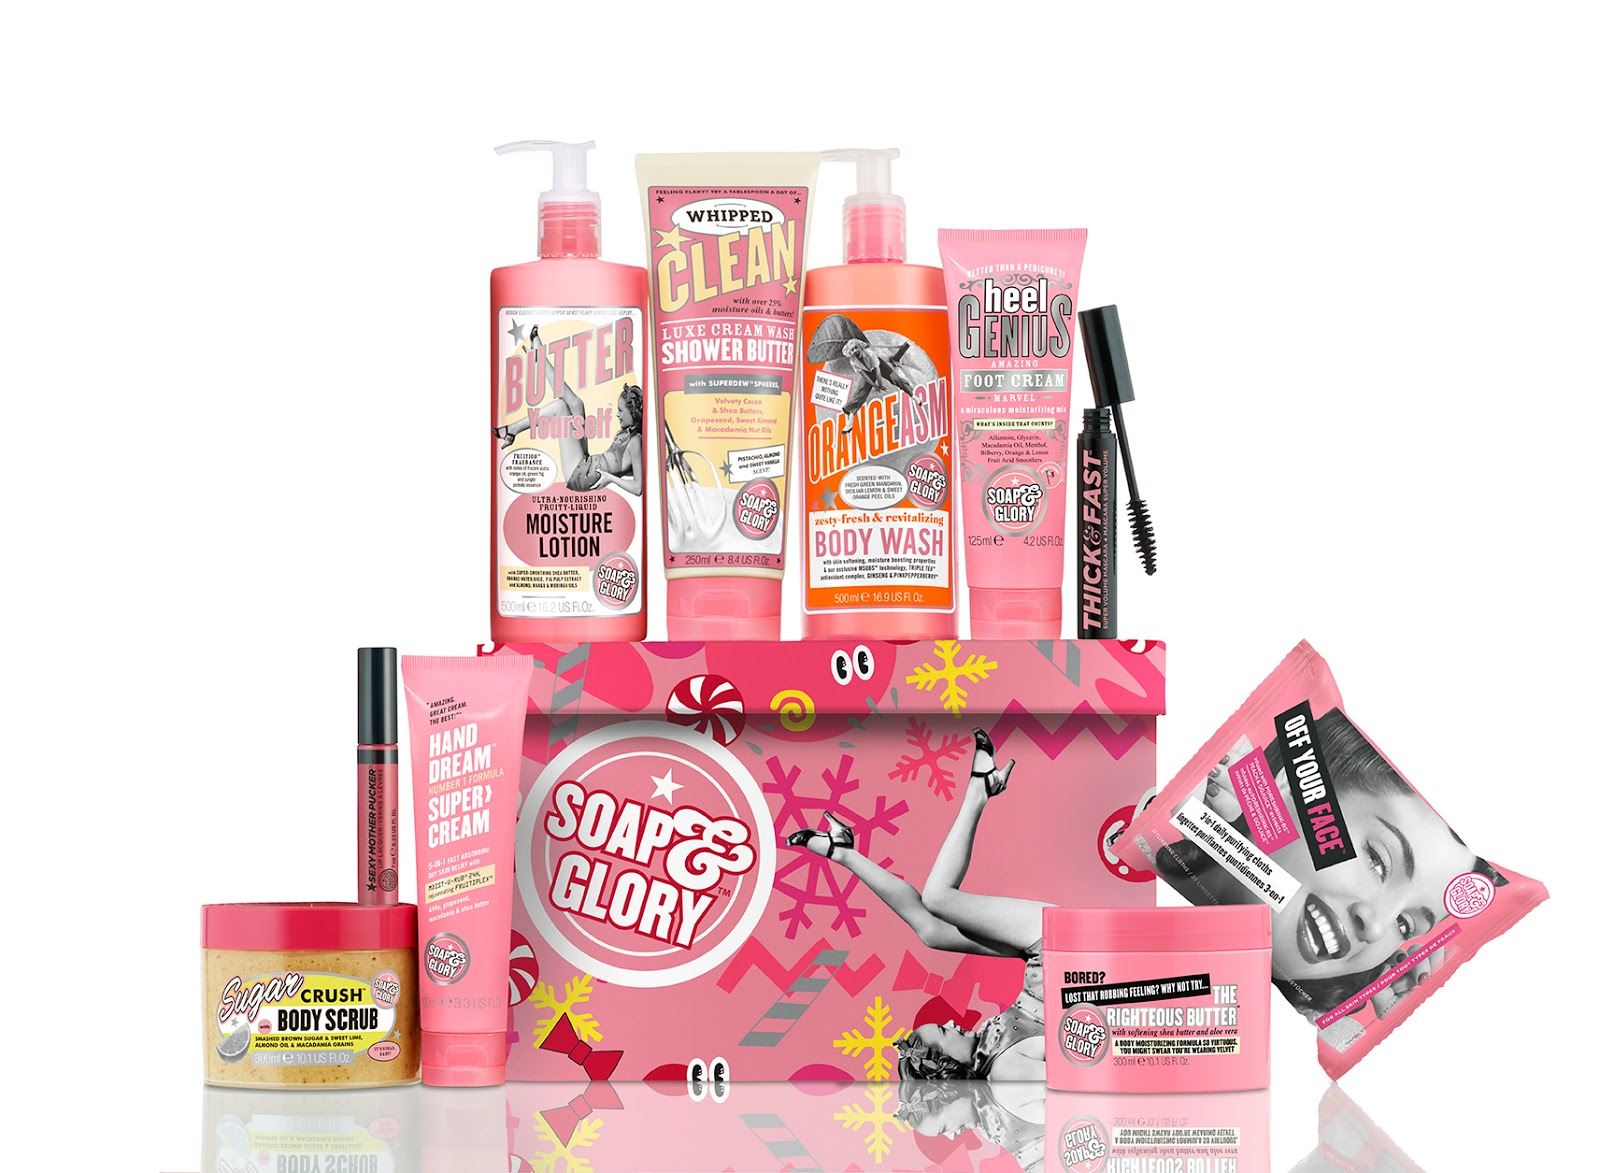 Soap and Glory the next big thing gift set 2014